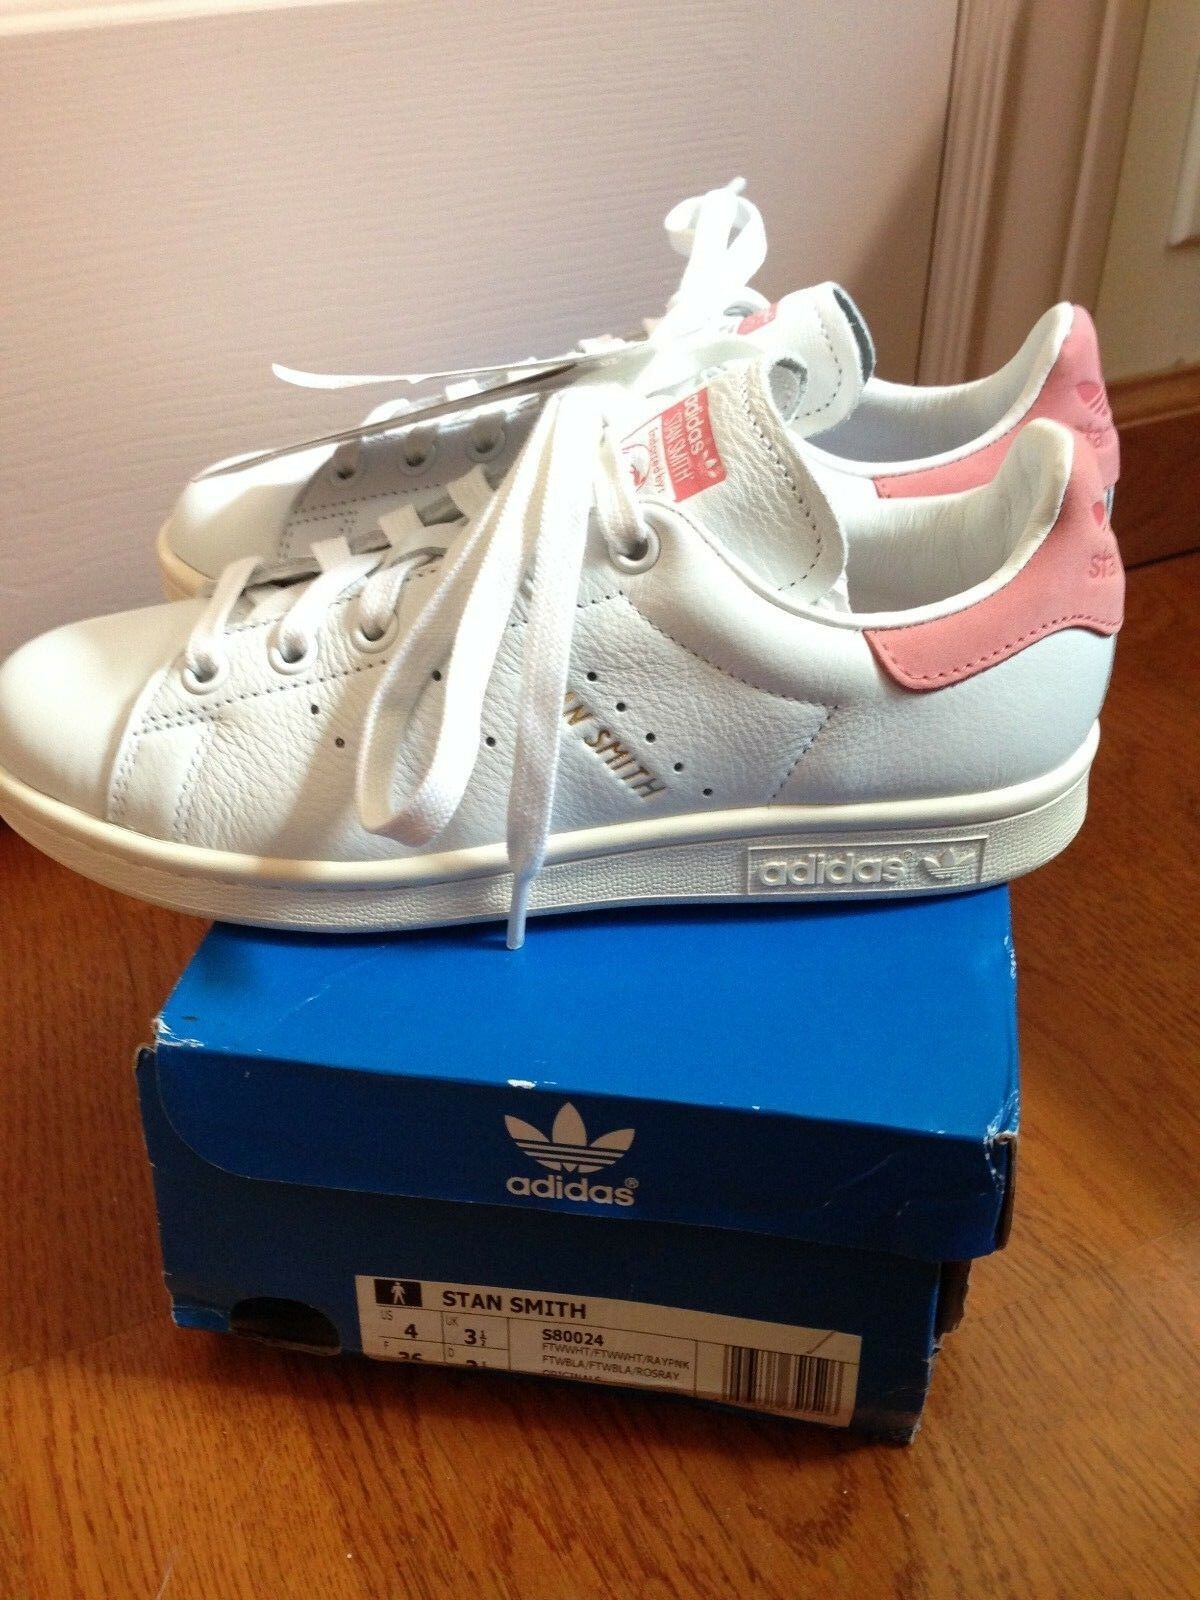 Adidas Stan Smith Raw Ray Pastel Pink White Men 4 Shoes Trainers Women 5 - 5.5